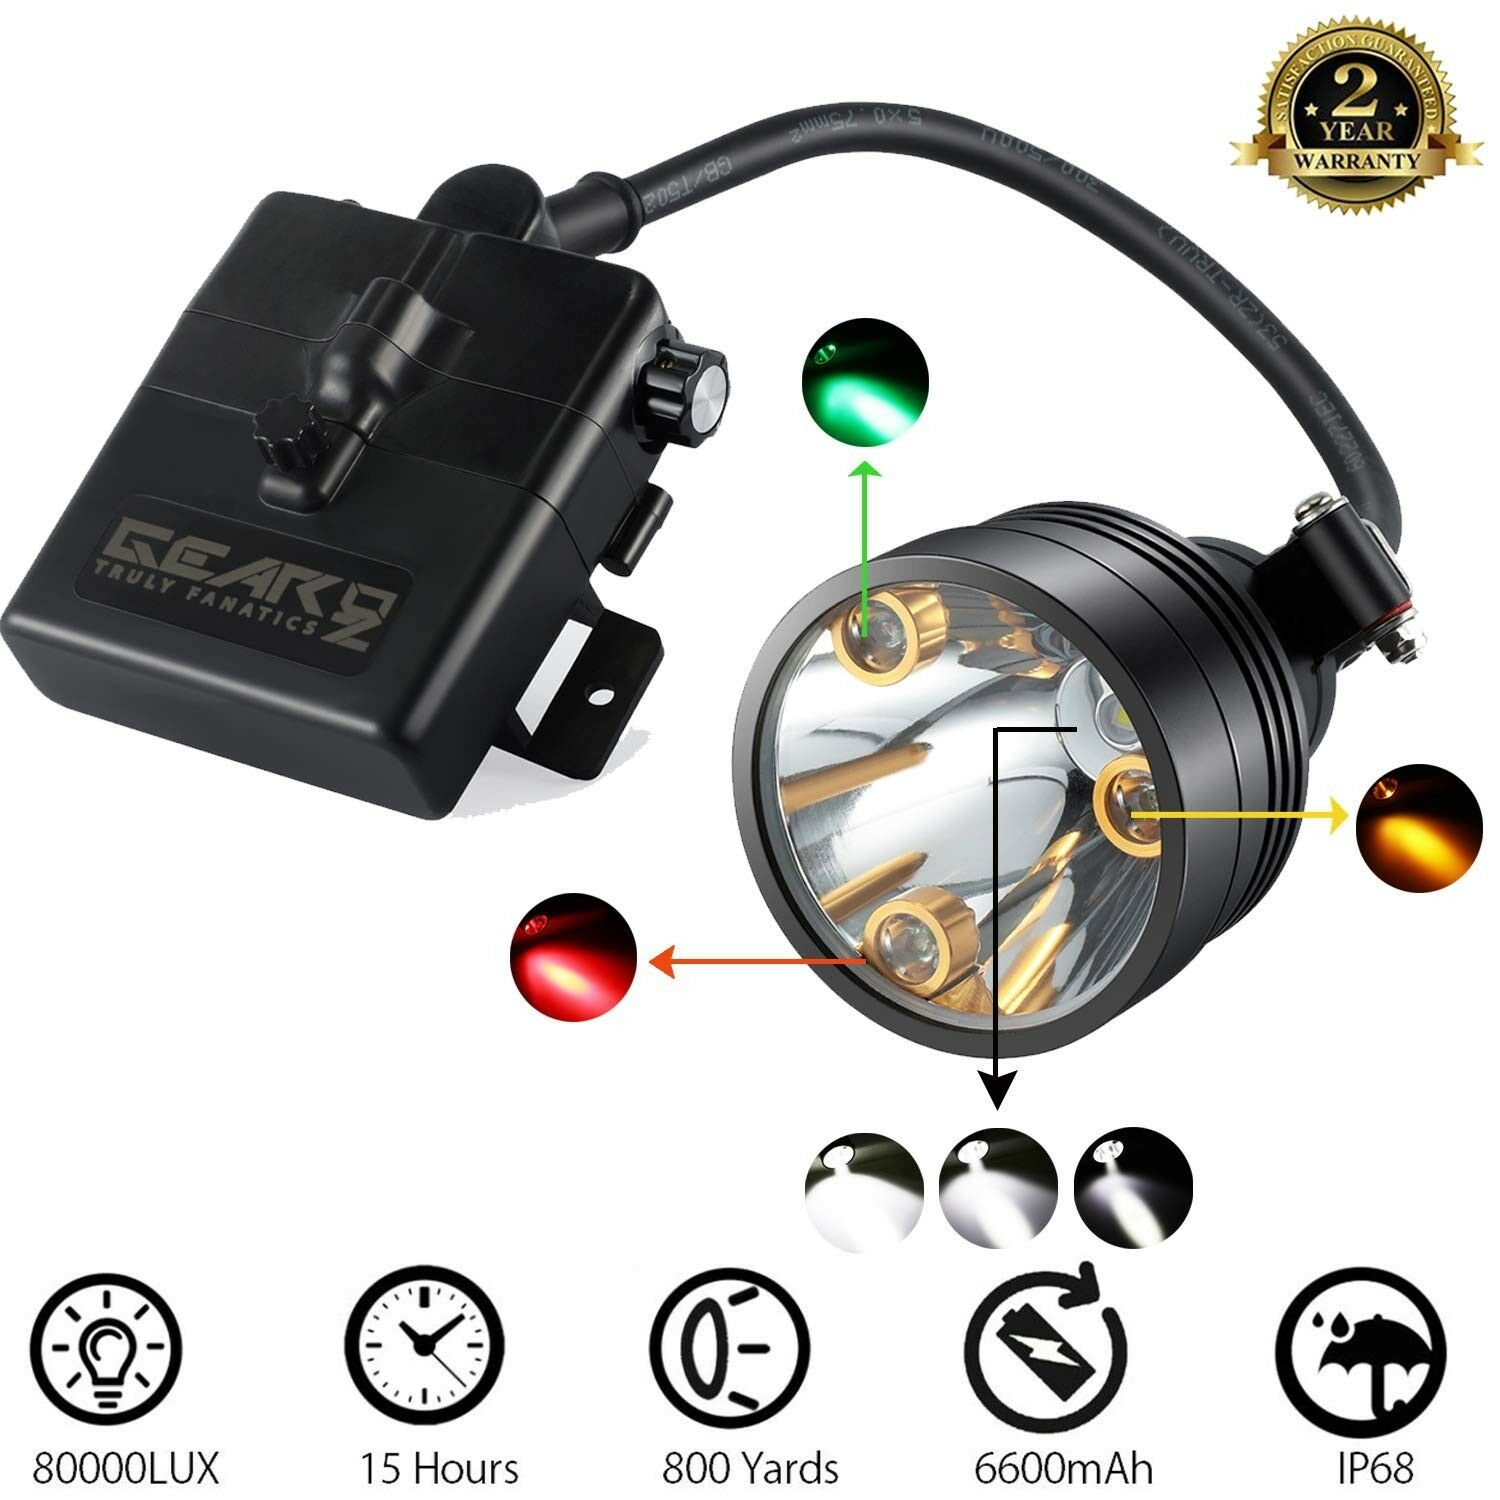 Cree LED Hunting Lights with Red & Green Hunting Light for Scanning Coons,Coy...